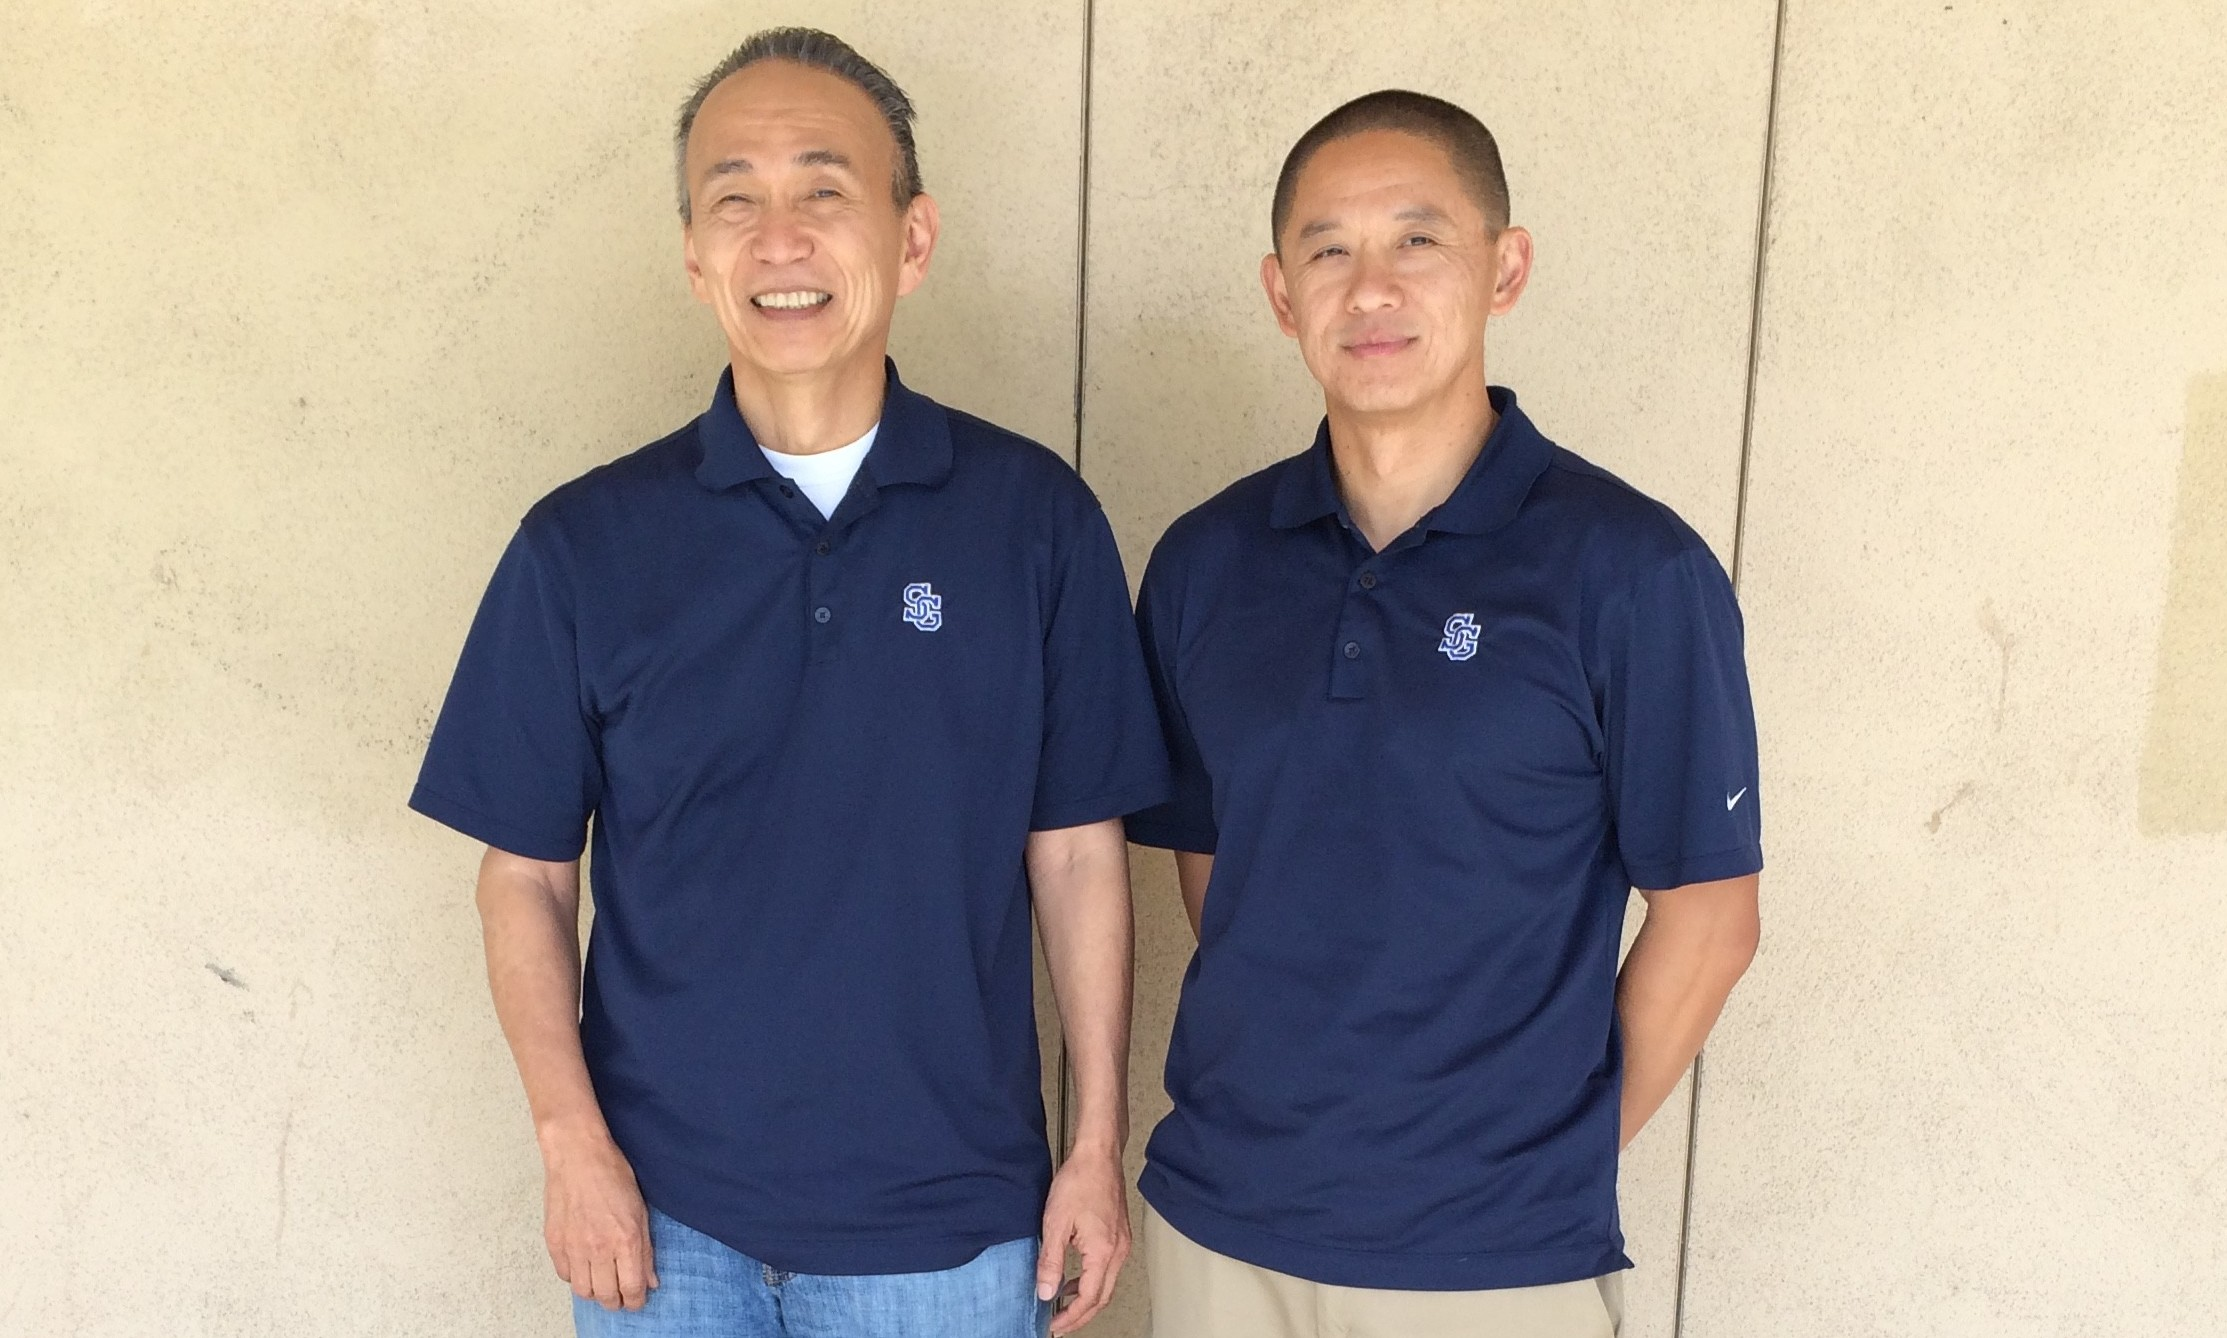 Decades long volleyball legacy ends with departures of Kwan, Kanow